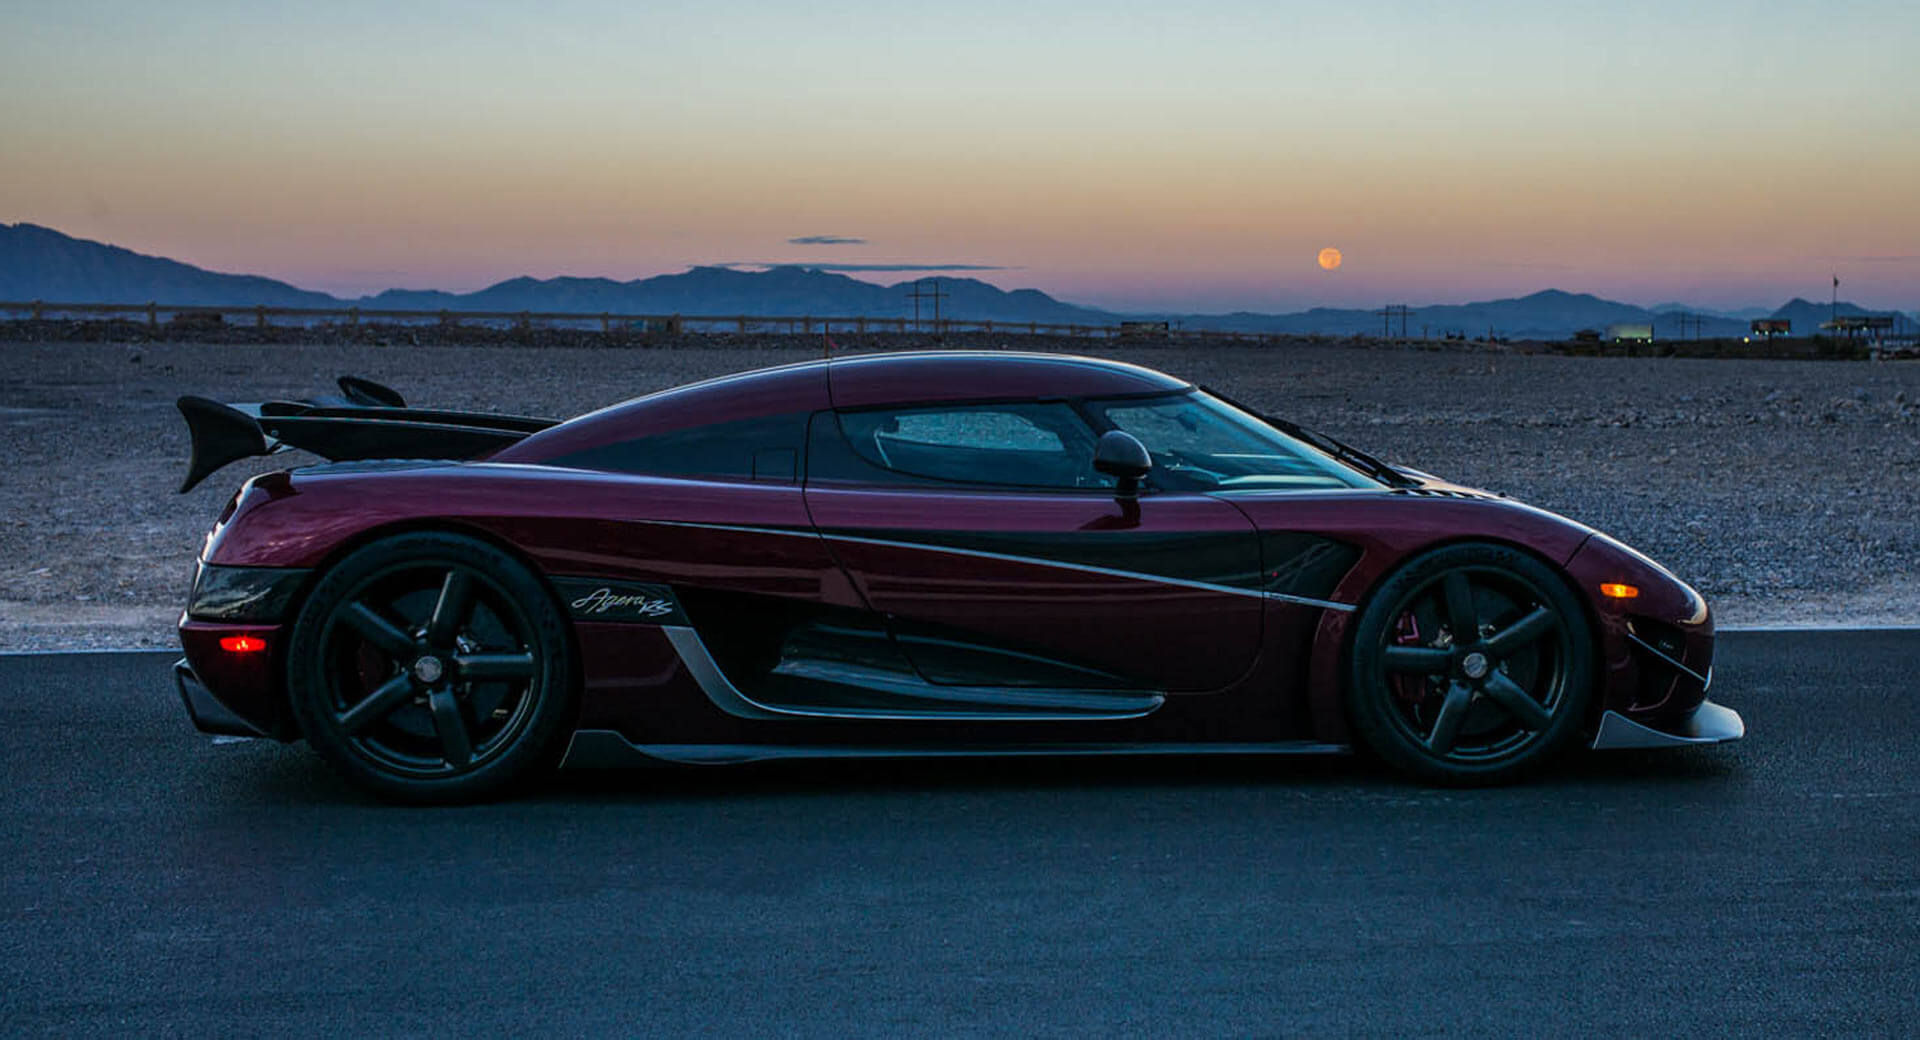 koenigsegg says the agera rs could go 300 mph carscoops. Black Bedroom Furniture Sets. Home Design Ideas